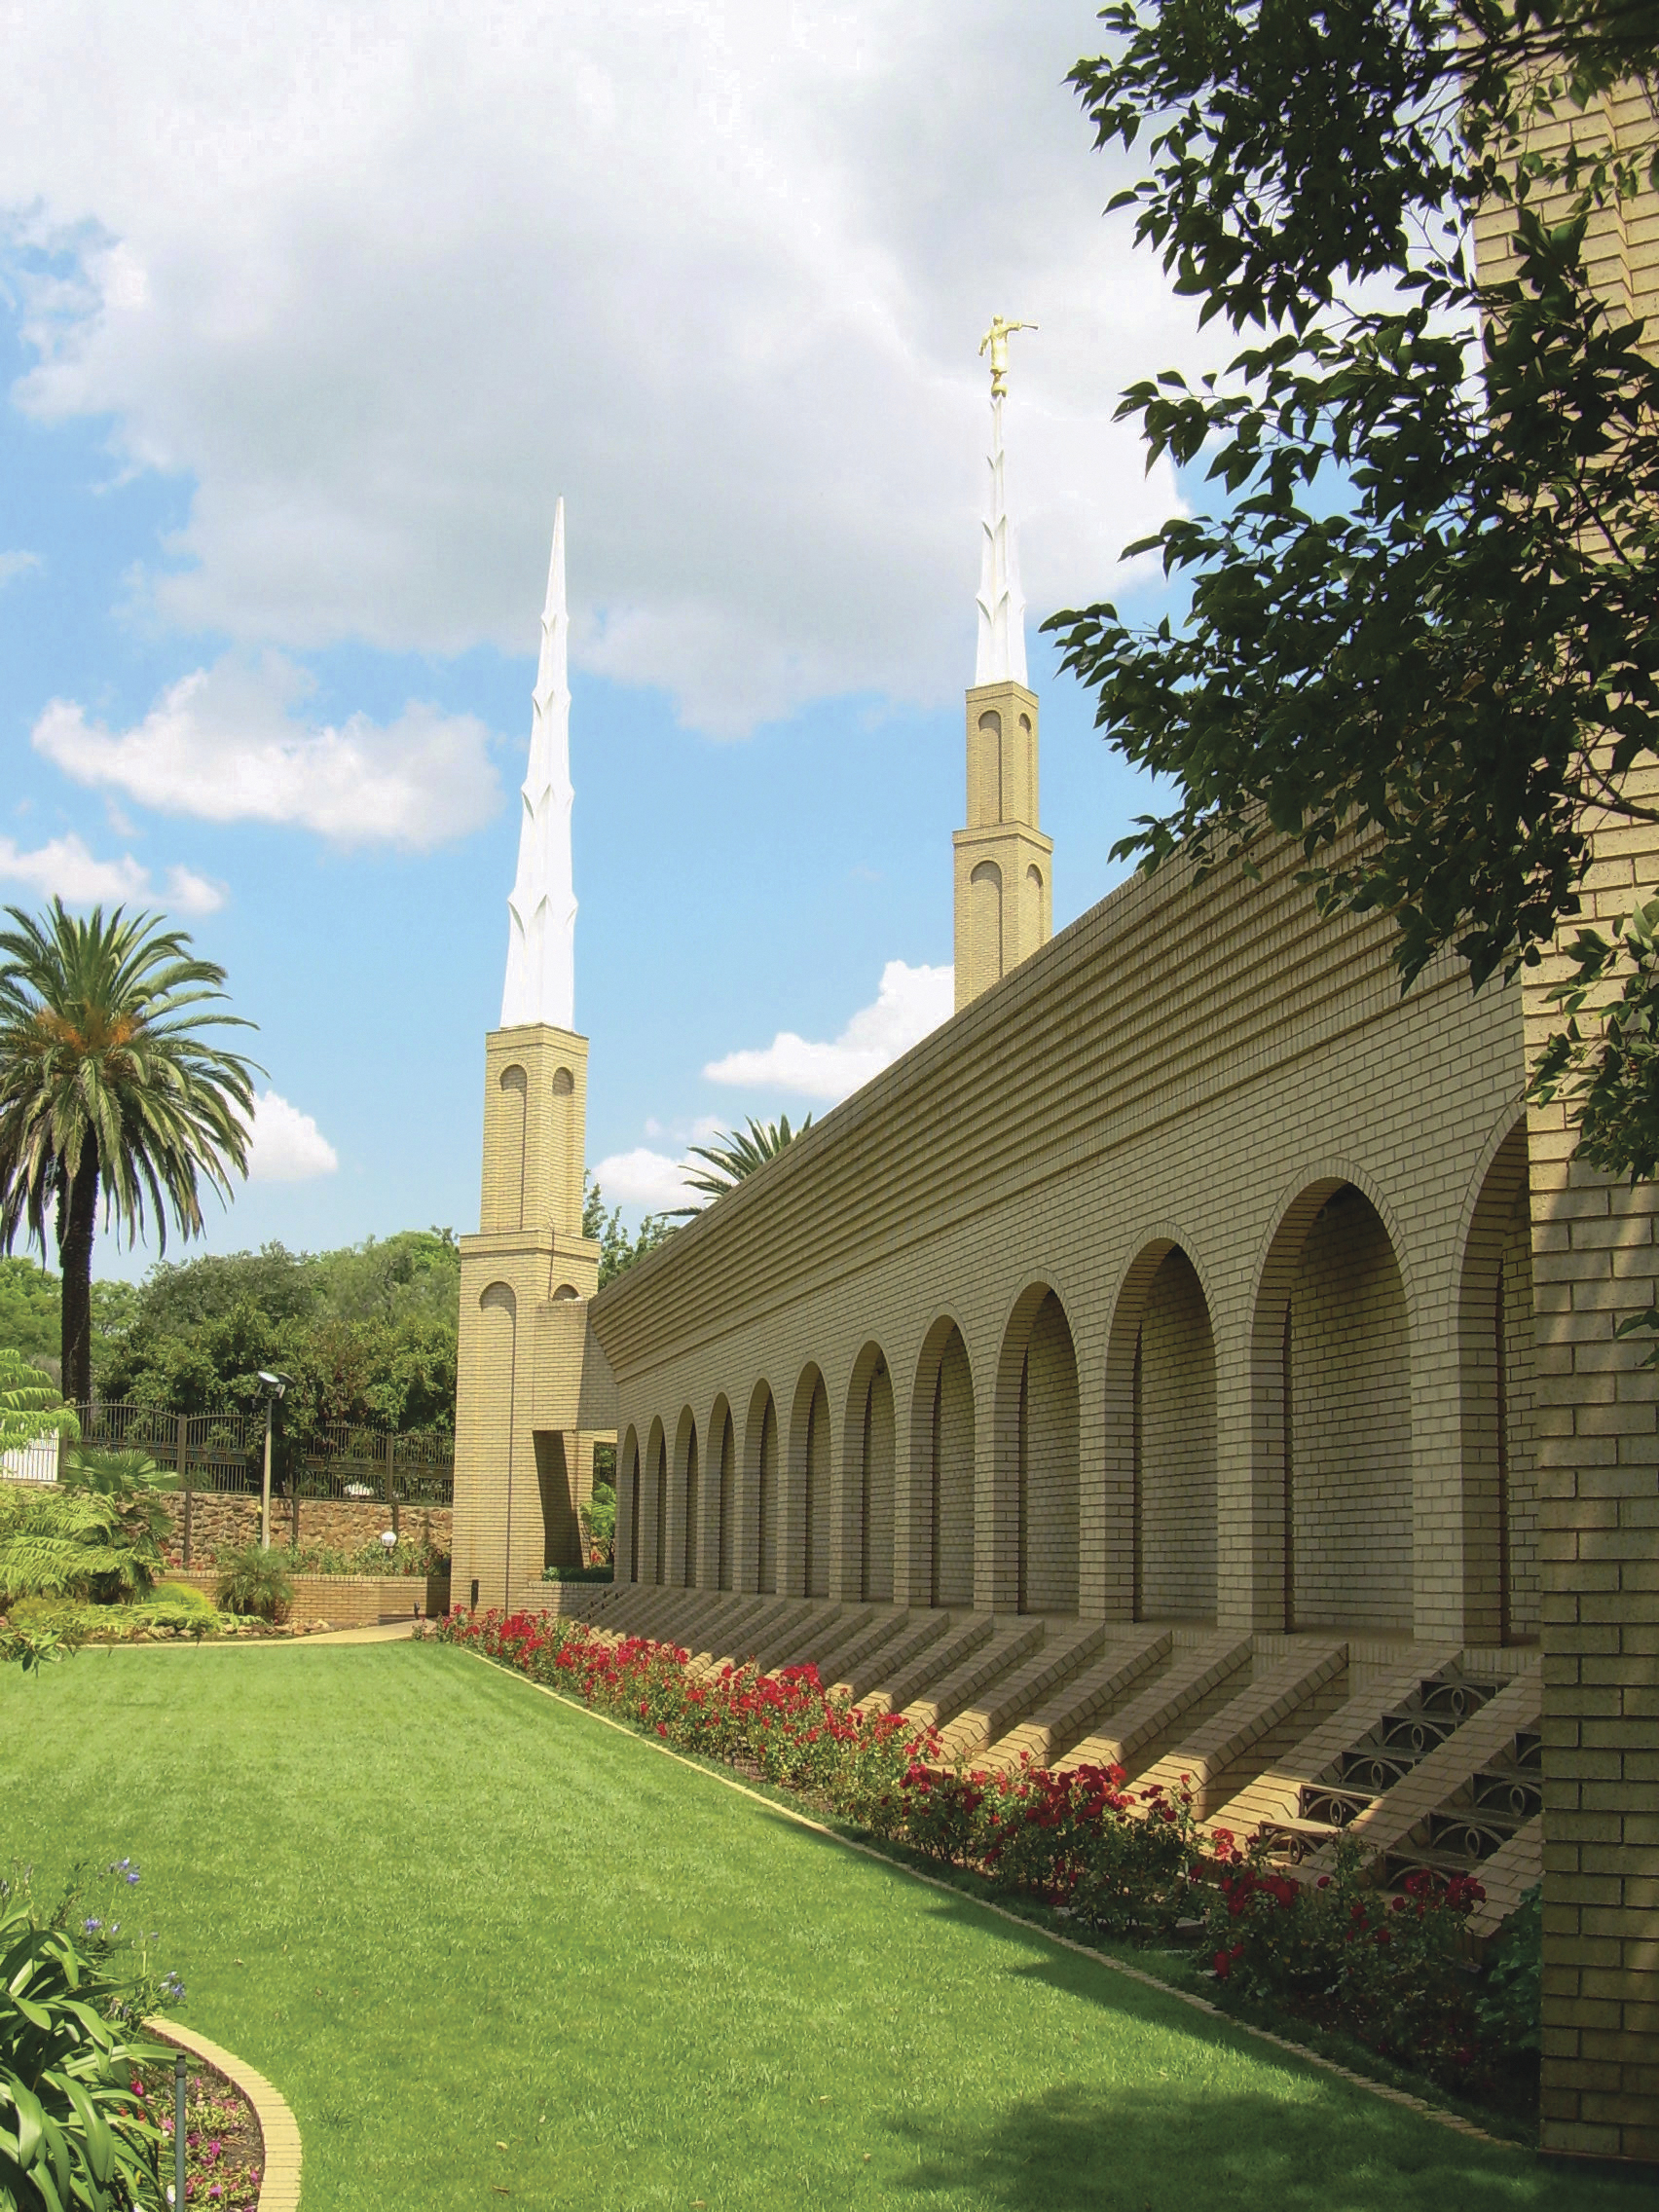 The Johannesburg South Africa Temple side view, including spires and scenery.